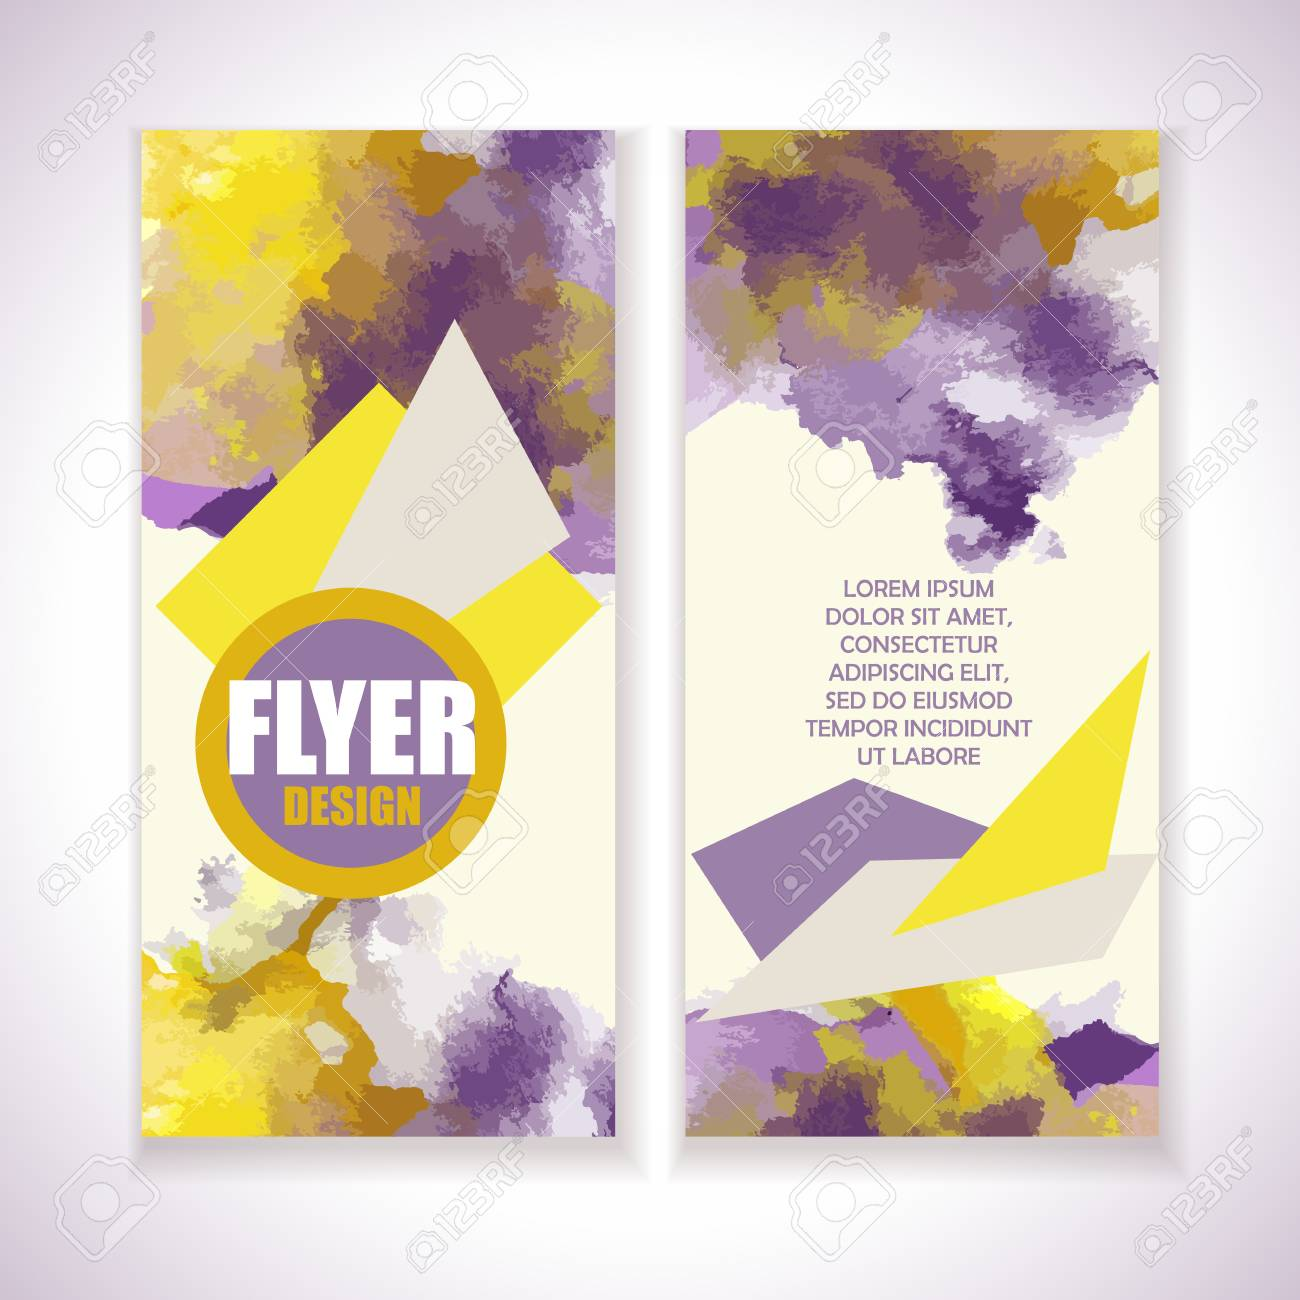 flyer with watercolor grange effect yellow and violet colors